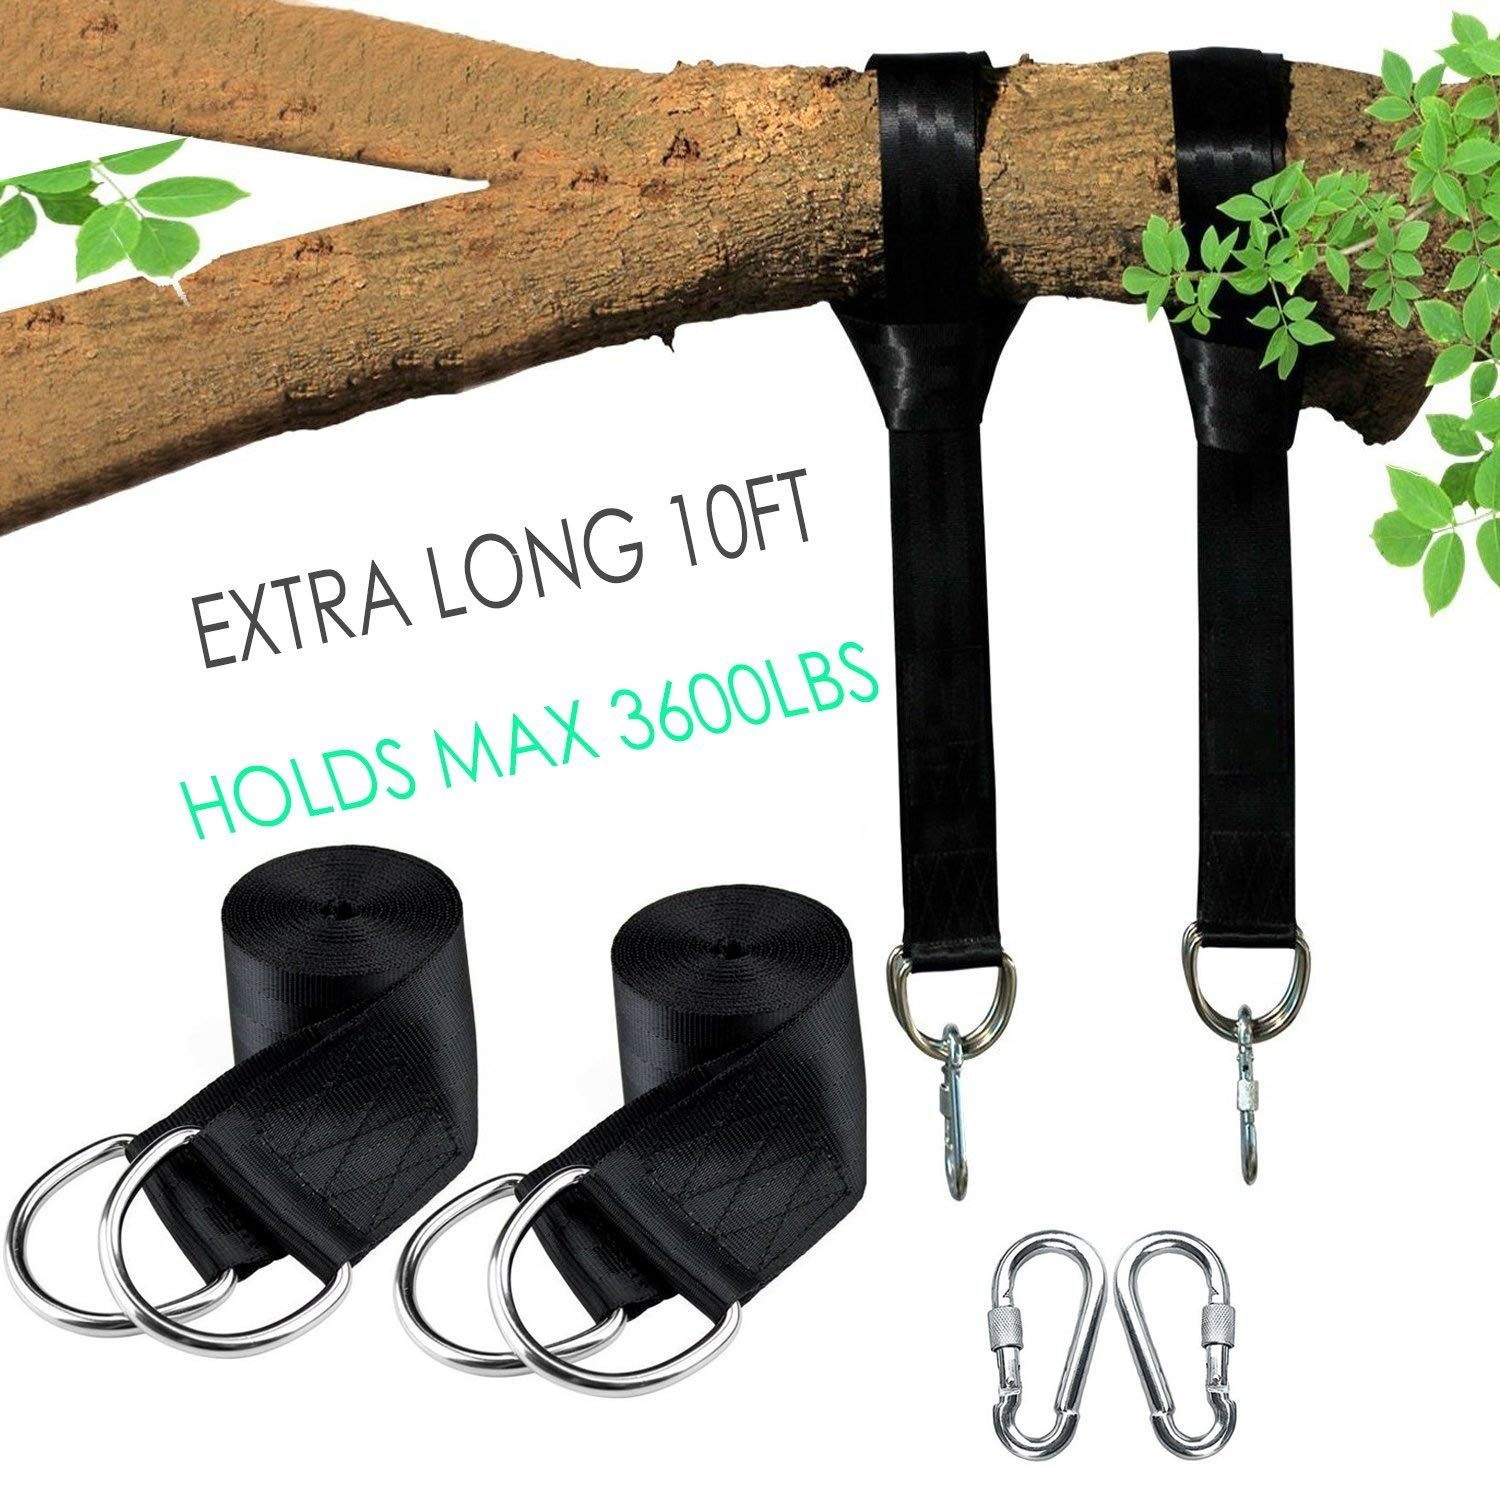 Tree Swing Hanging Sets, Kit - Harm, 3m Tree Swing Disc Straps 2 Holds 1630kg, Tree No Harm, Perfect For Hammocks, Tree Swing Sets, Disc Swings And . Swing Ropes For Best Tree Swing B072LTWGNB, ブーツとスニーカー Face to Face:2634b981 --- itxassou.fr